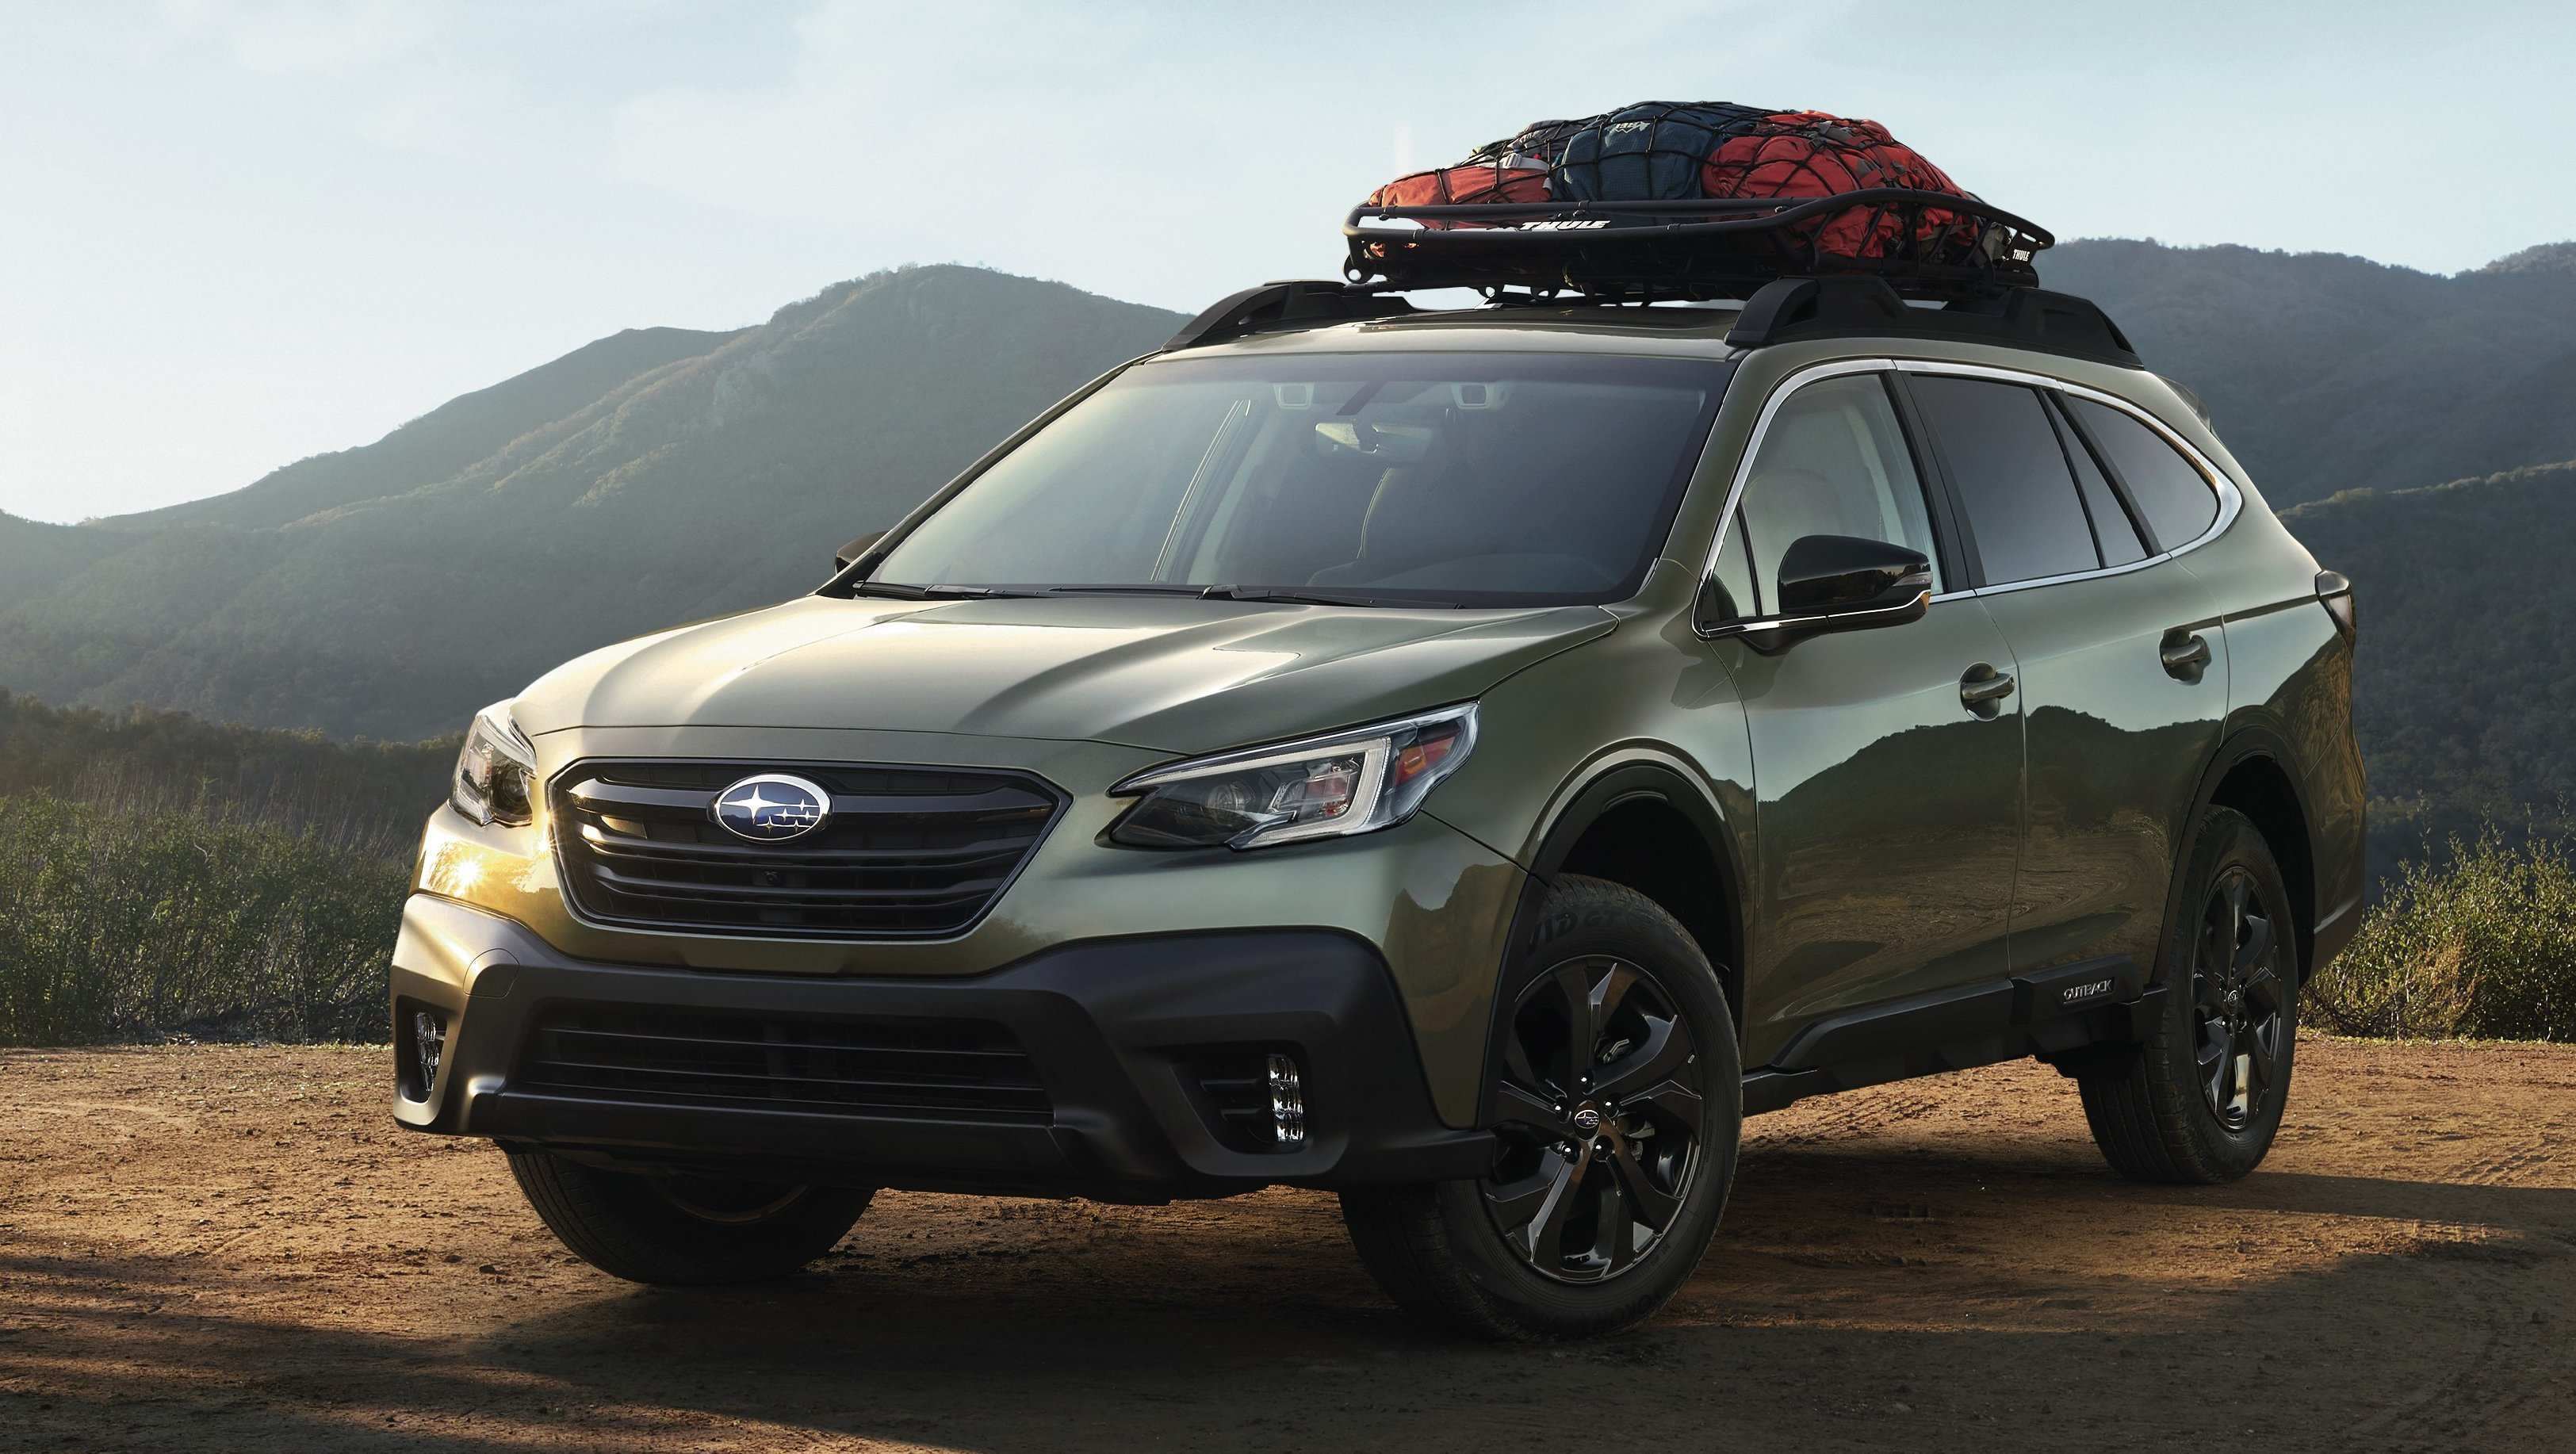 65 Best Review Subaru Vision 2020 New Concept for Subaru Vision 2020